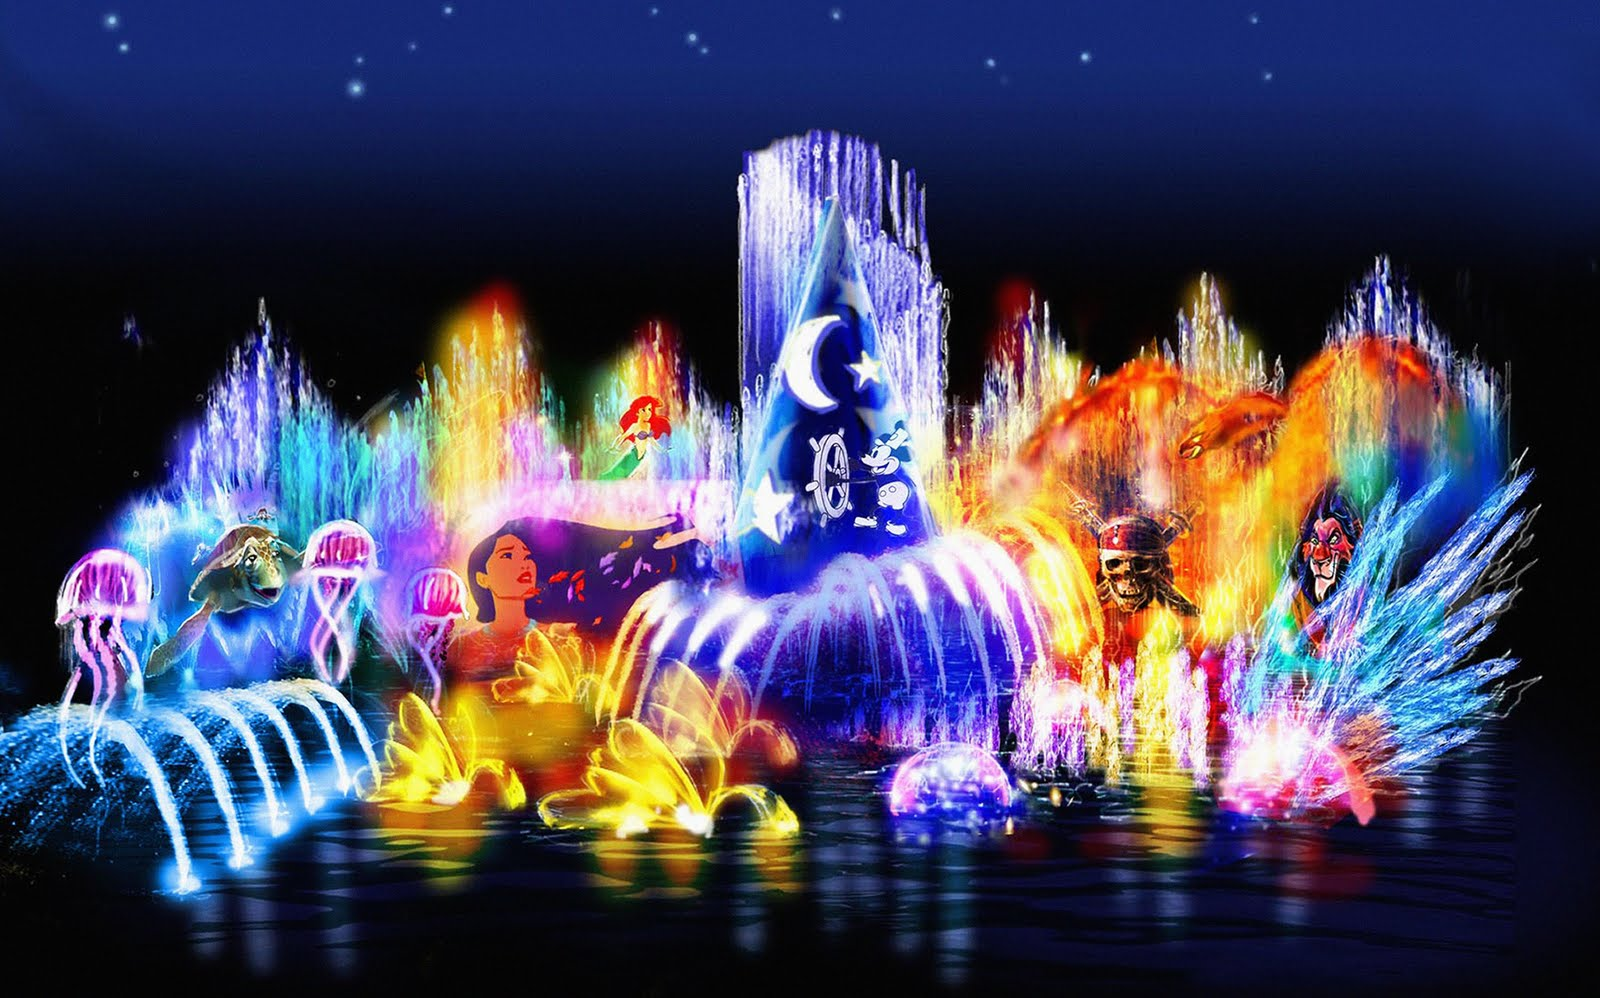 Dream Makers Making of World of Color at Disneyland [Summer 1600x998